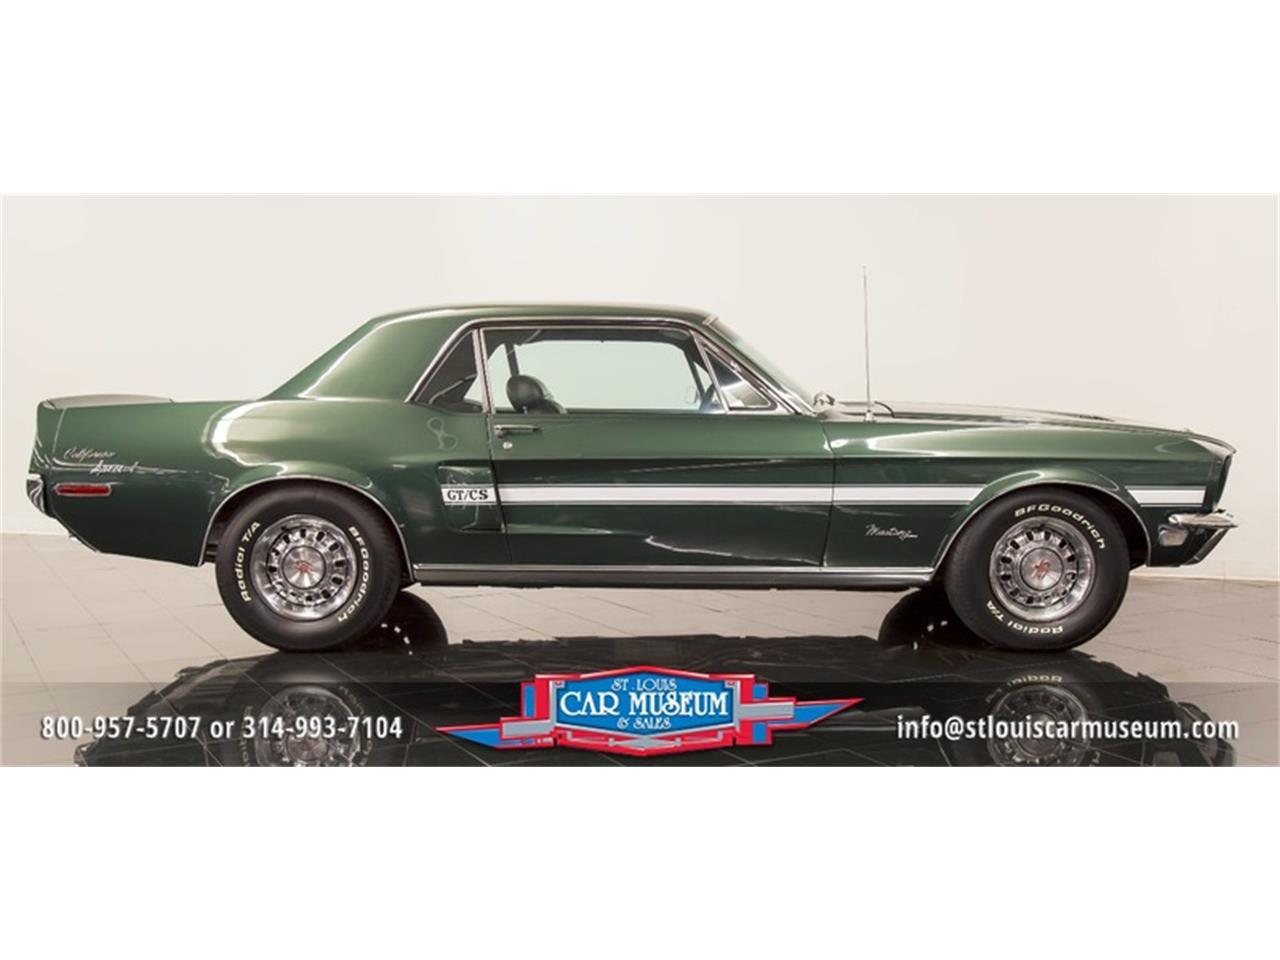 Large Picture of 1968 Ford Mustang GT/CS (California Special) located in Missouri - $59,900.00 - LWVZ